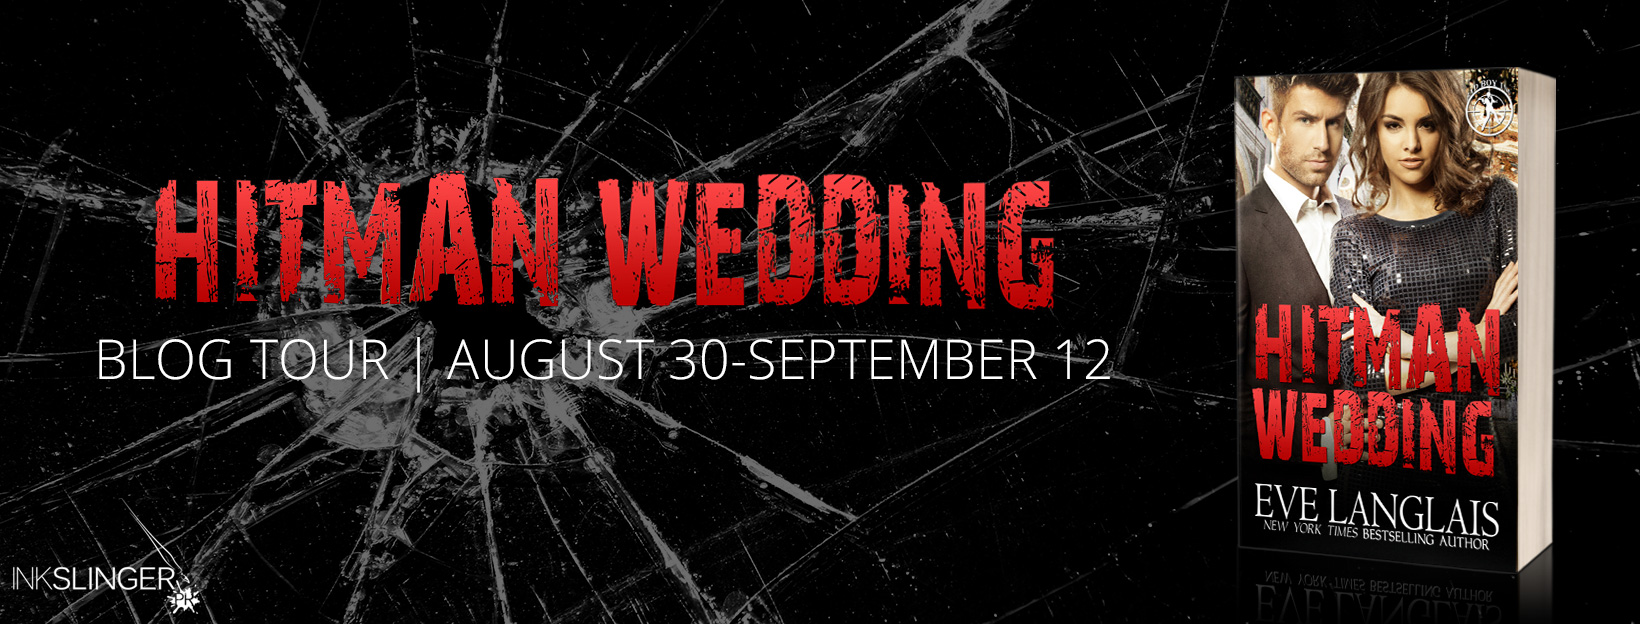 Blog Tour & Giveaway: Hitman Wedding by Eve Langlais